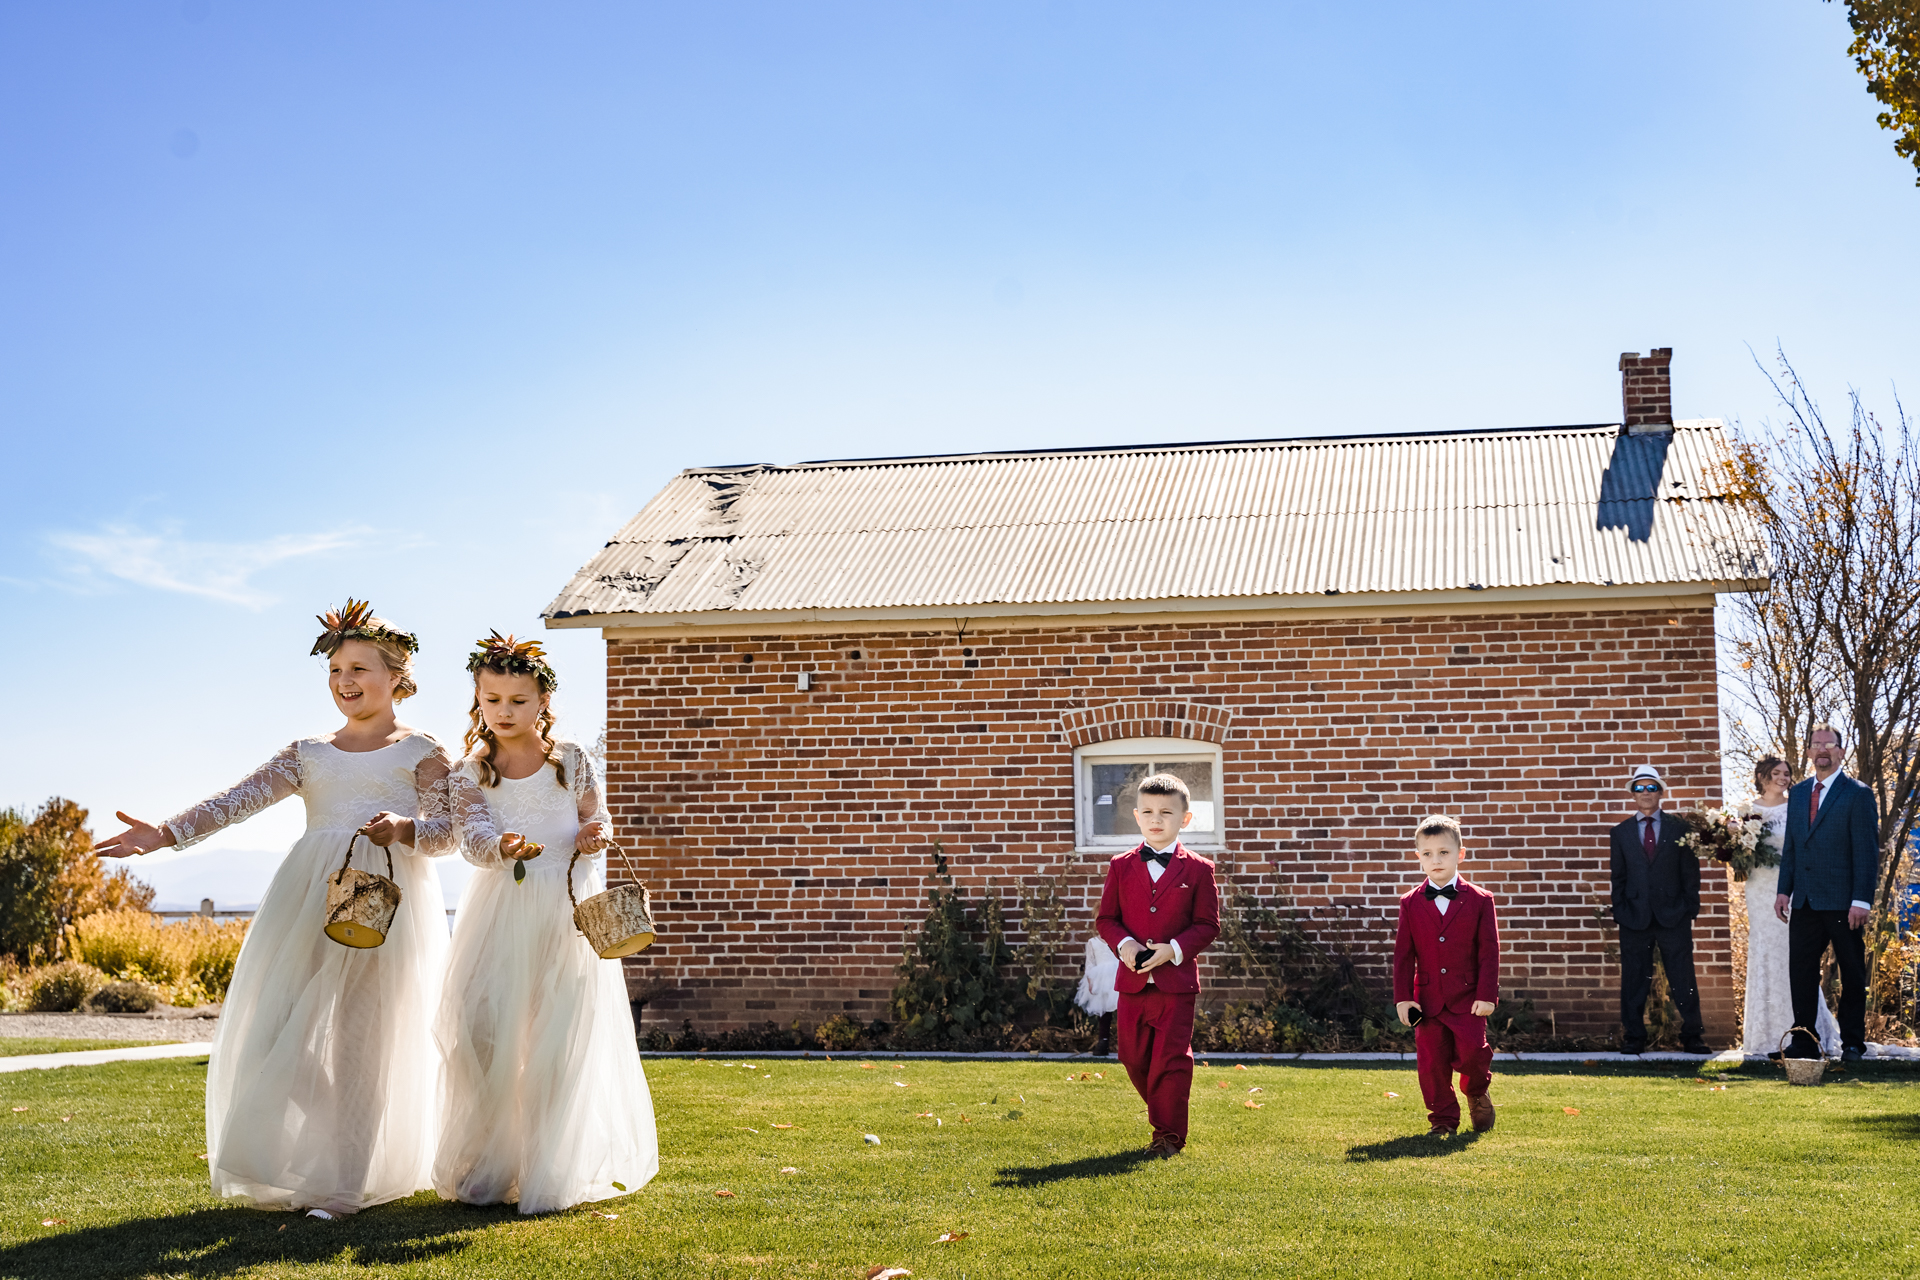 Wedding Photography at Dangberg Ranch | The flower girls and ring bearers lead the way